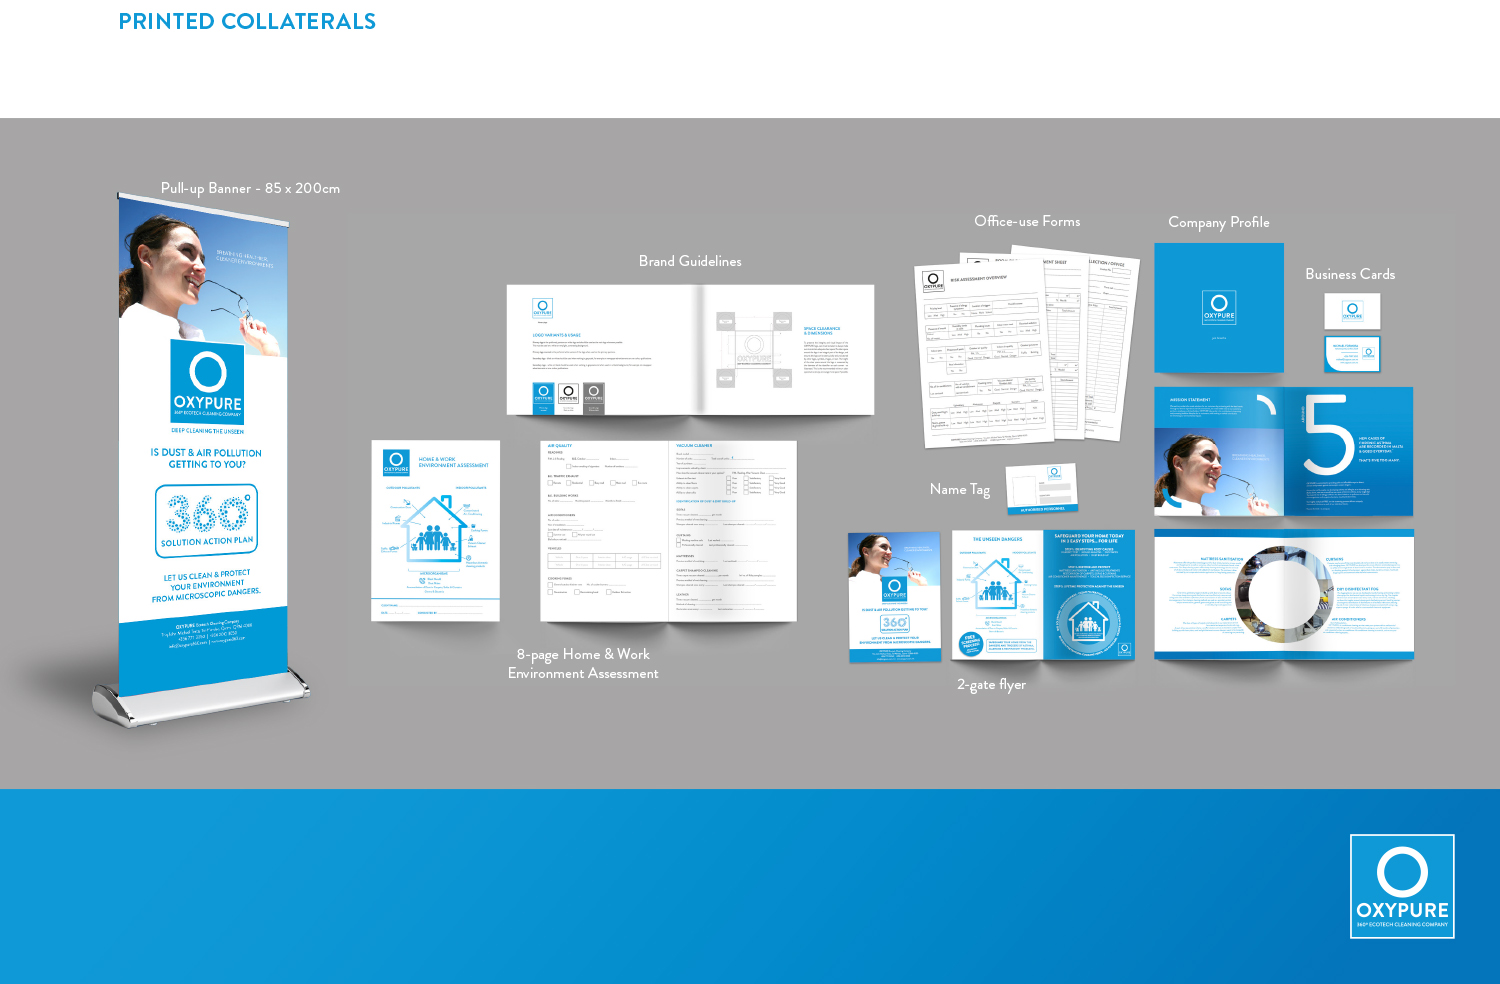 OXYPURE – Branding Mock Up Visuals 2-1